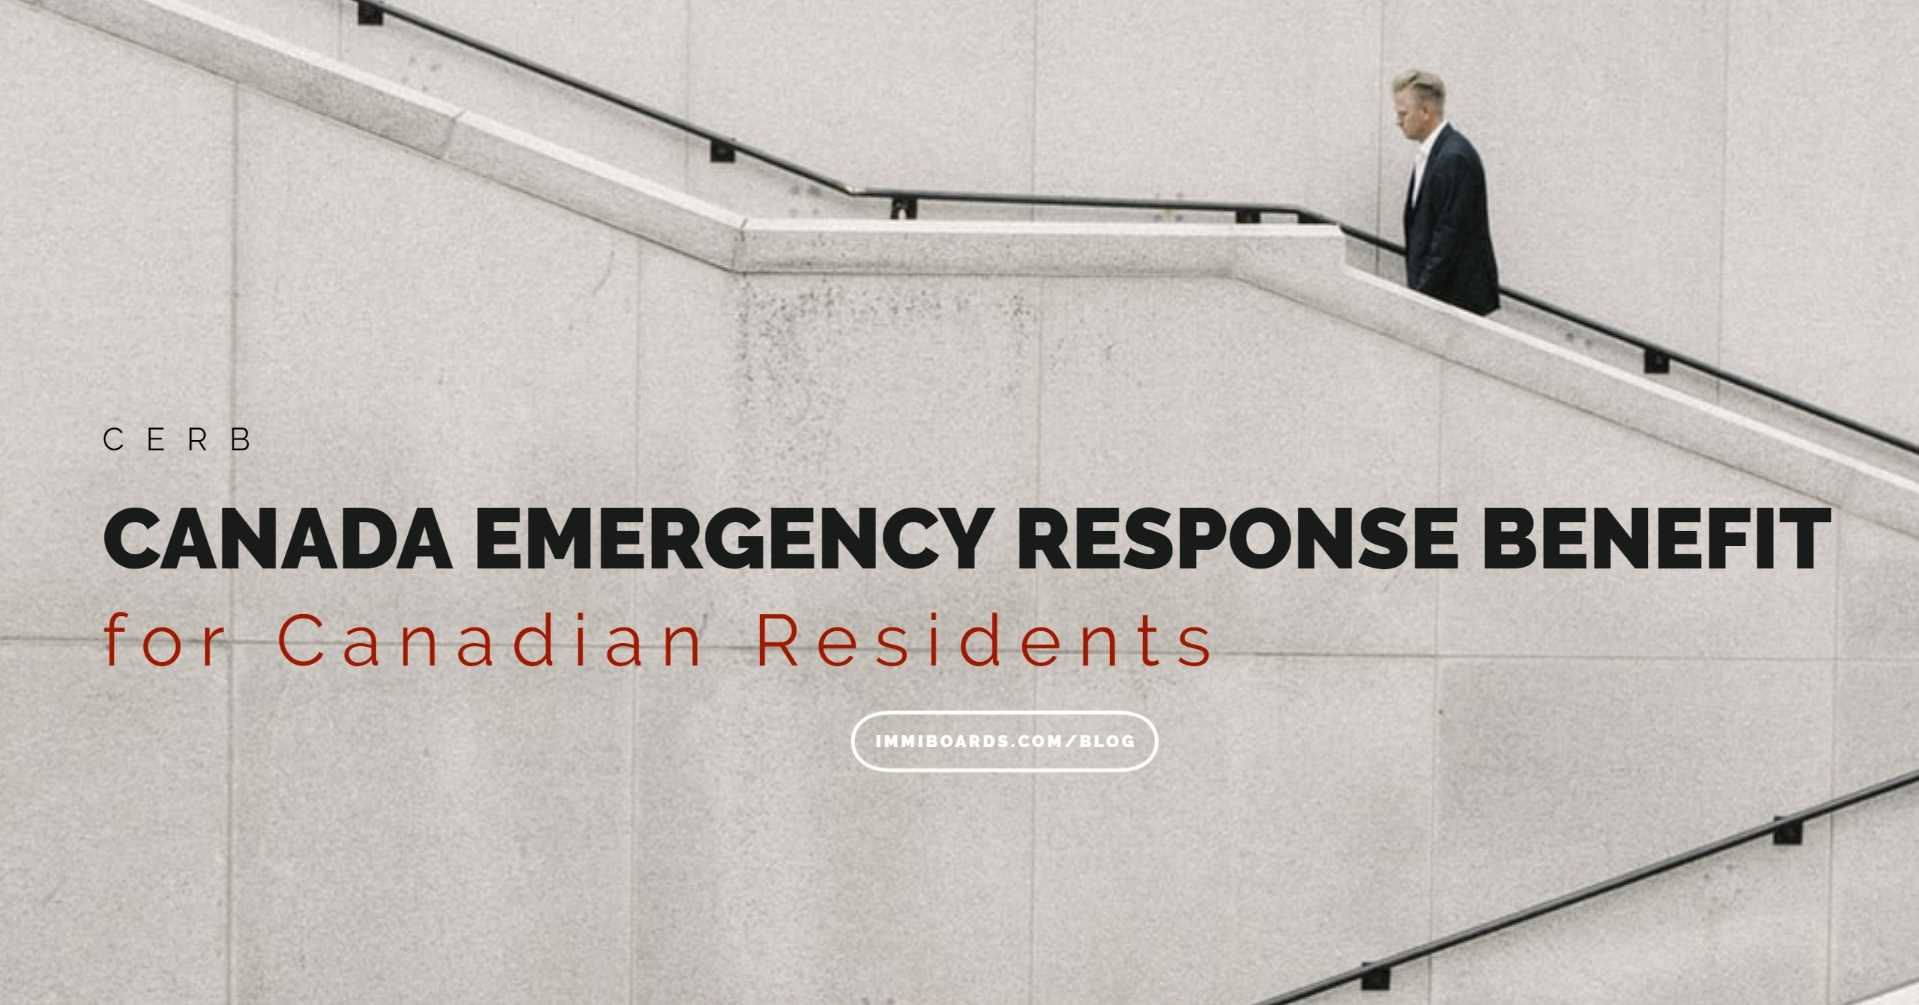 CERB Canada Emergency Response Benefit